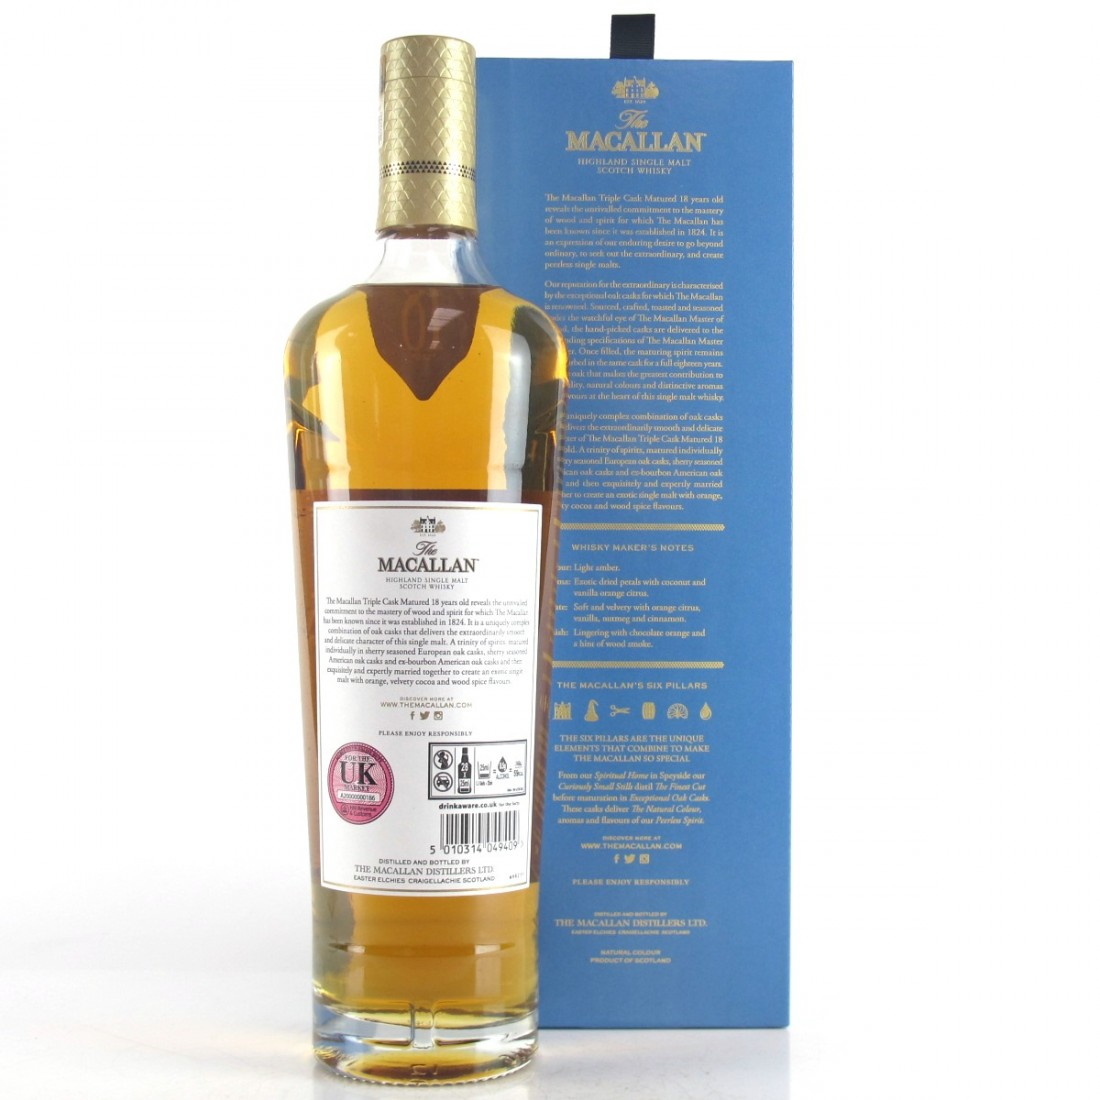 Macallan 18 Year Old Triple Cask Matured / 2018 Release